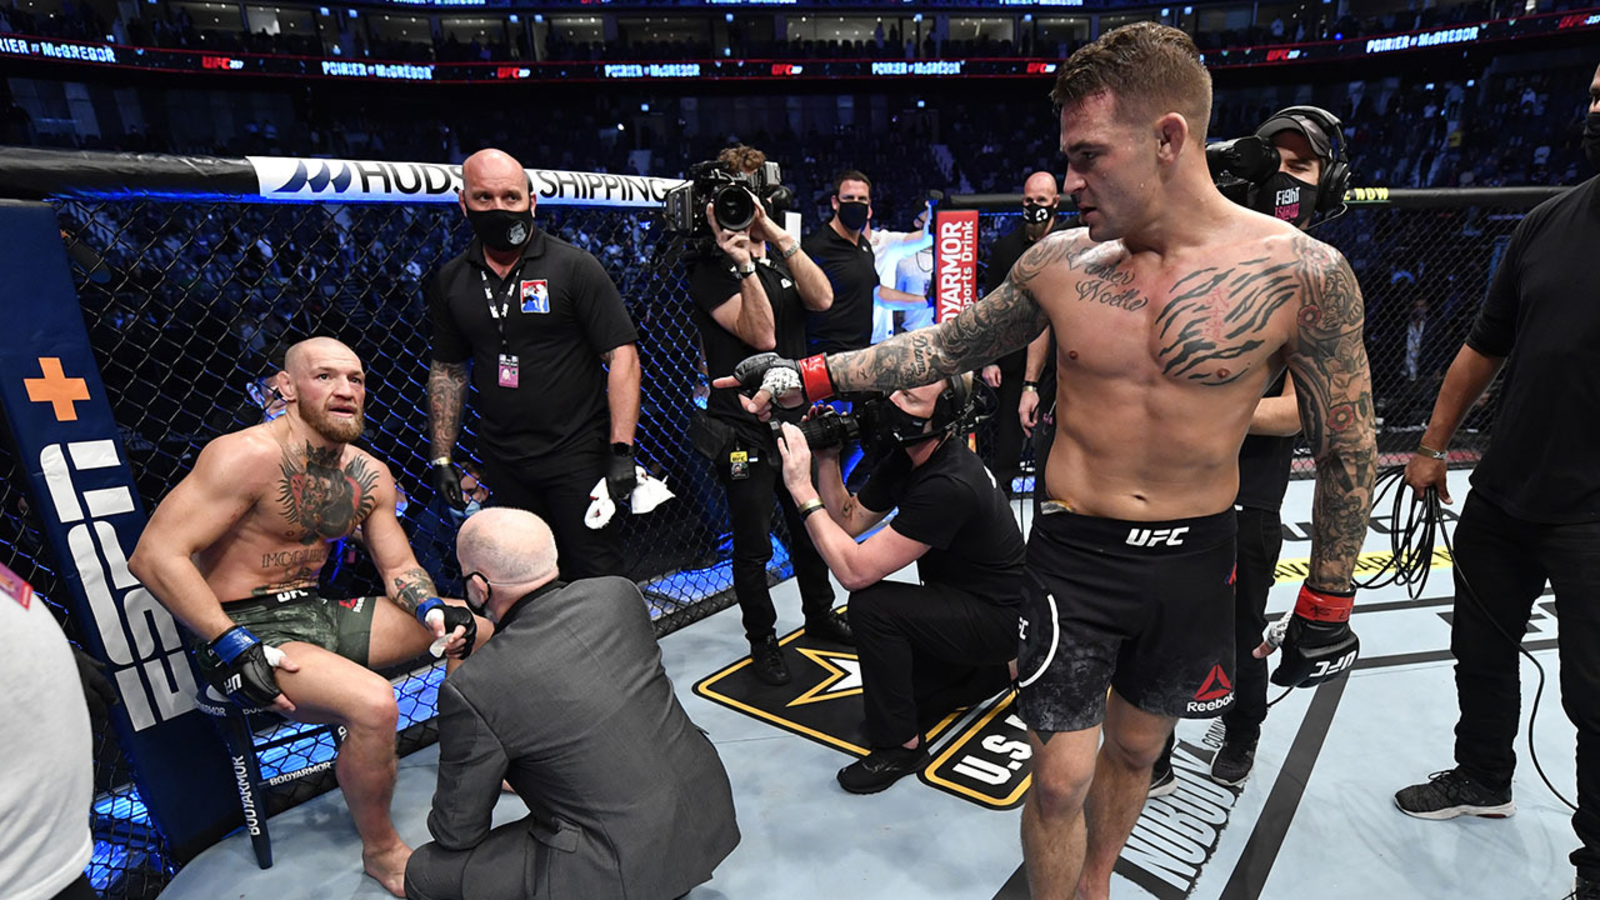 """UFC News: Dustin Poirier: """"I would have knocked out McGregor in the second or third round"""""""